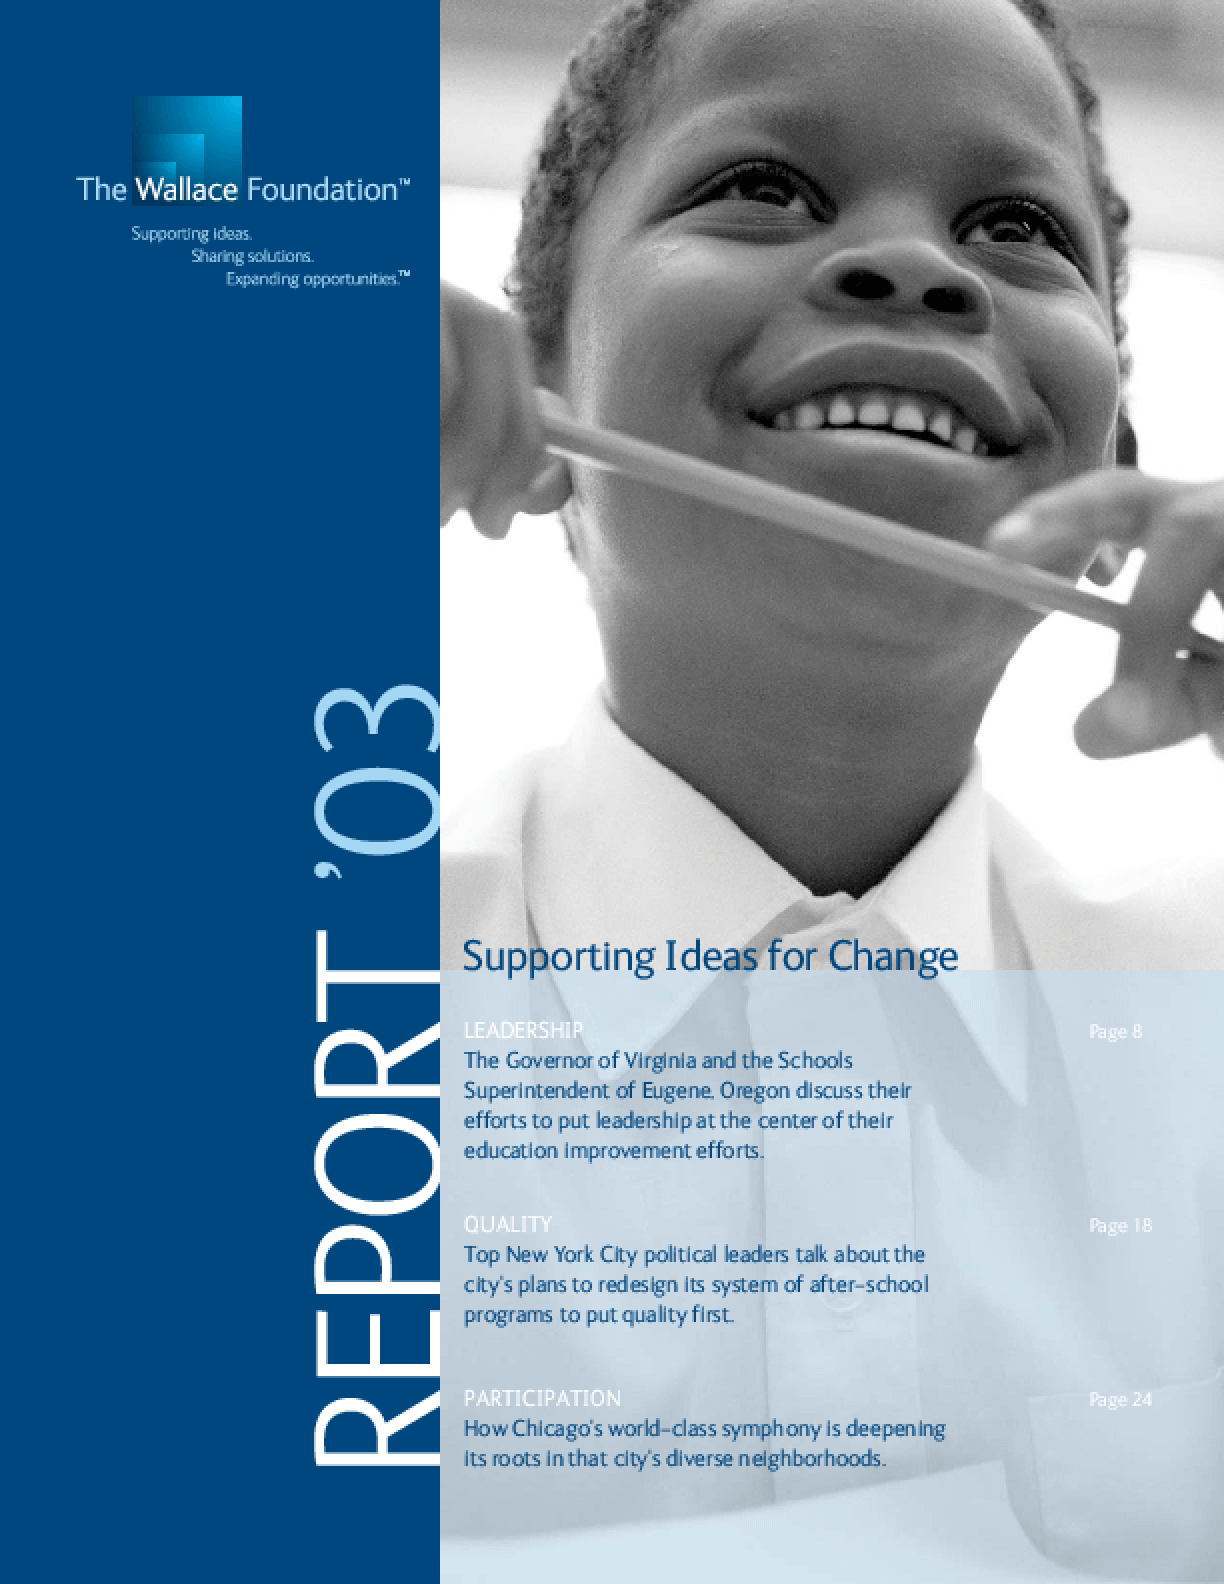 Wallace Foundation - 2003 Annual Report: Supporting Ideas for Change